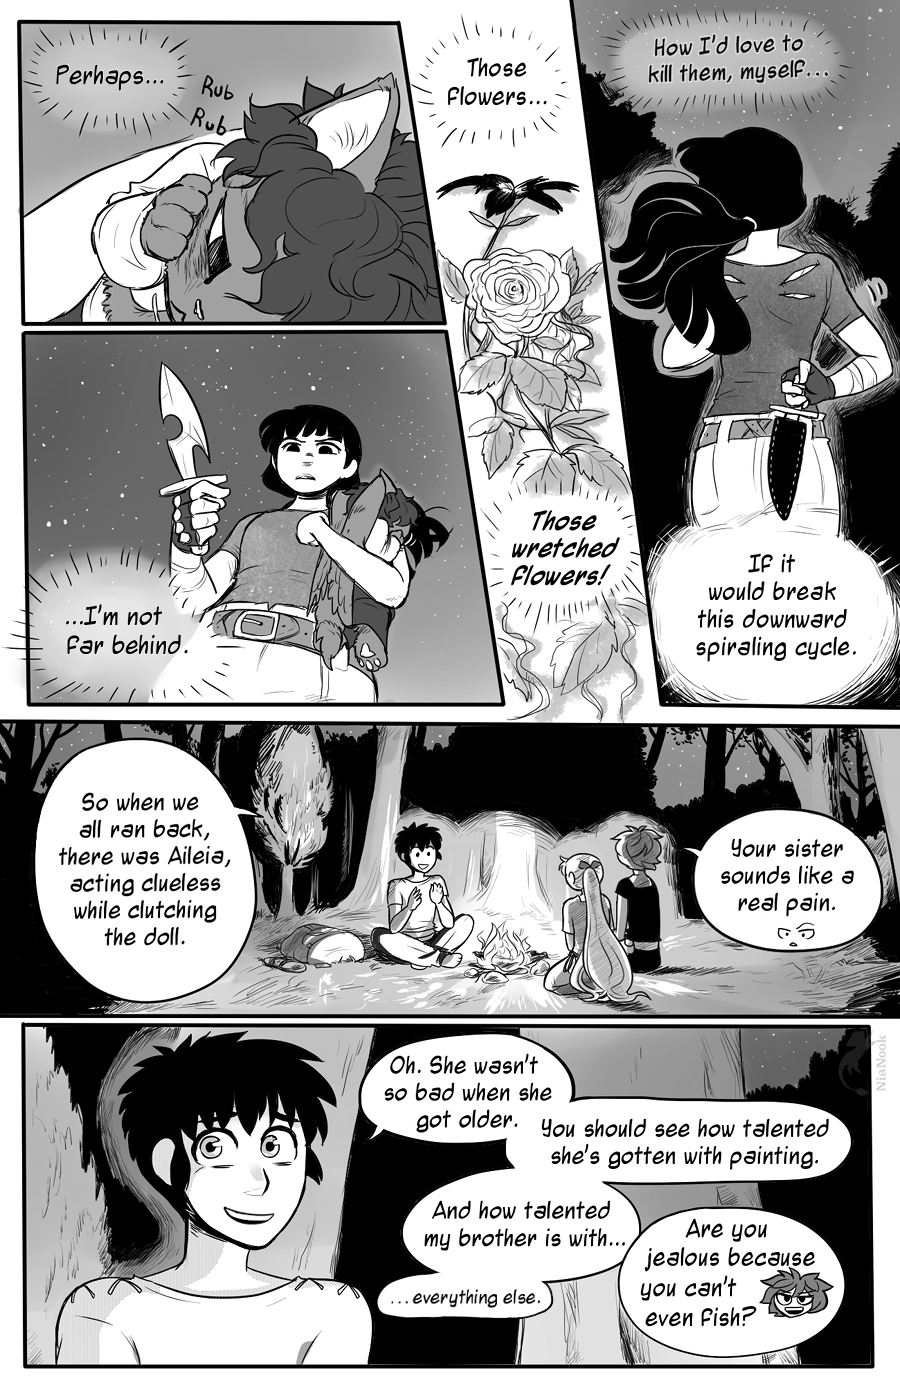 Page 30 (Book 3)